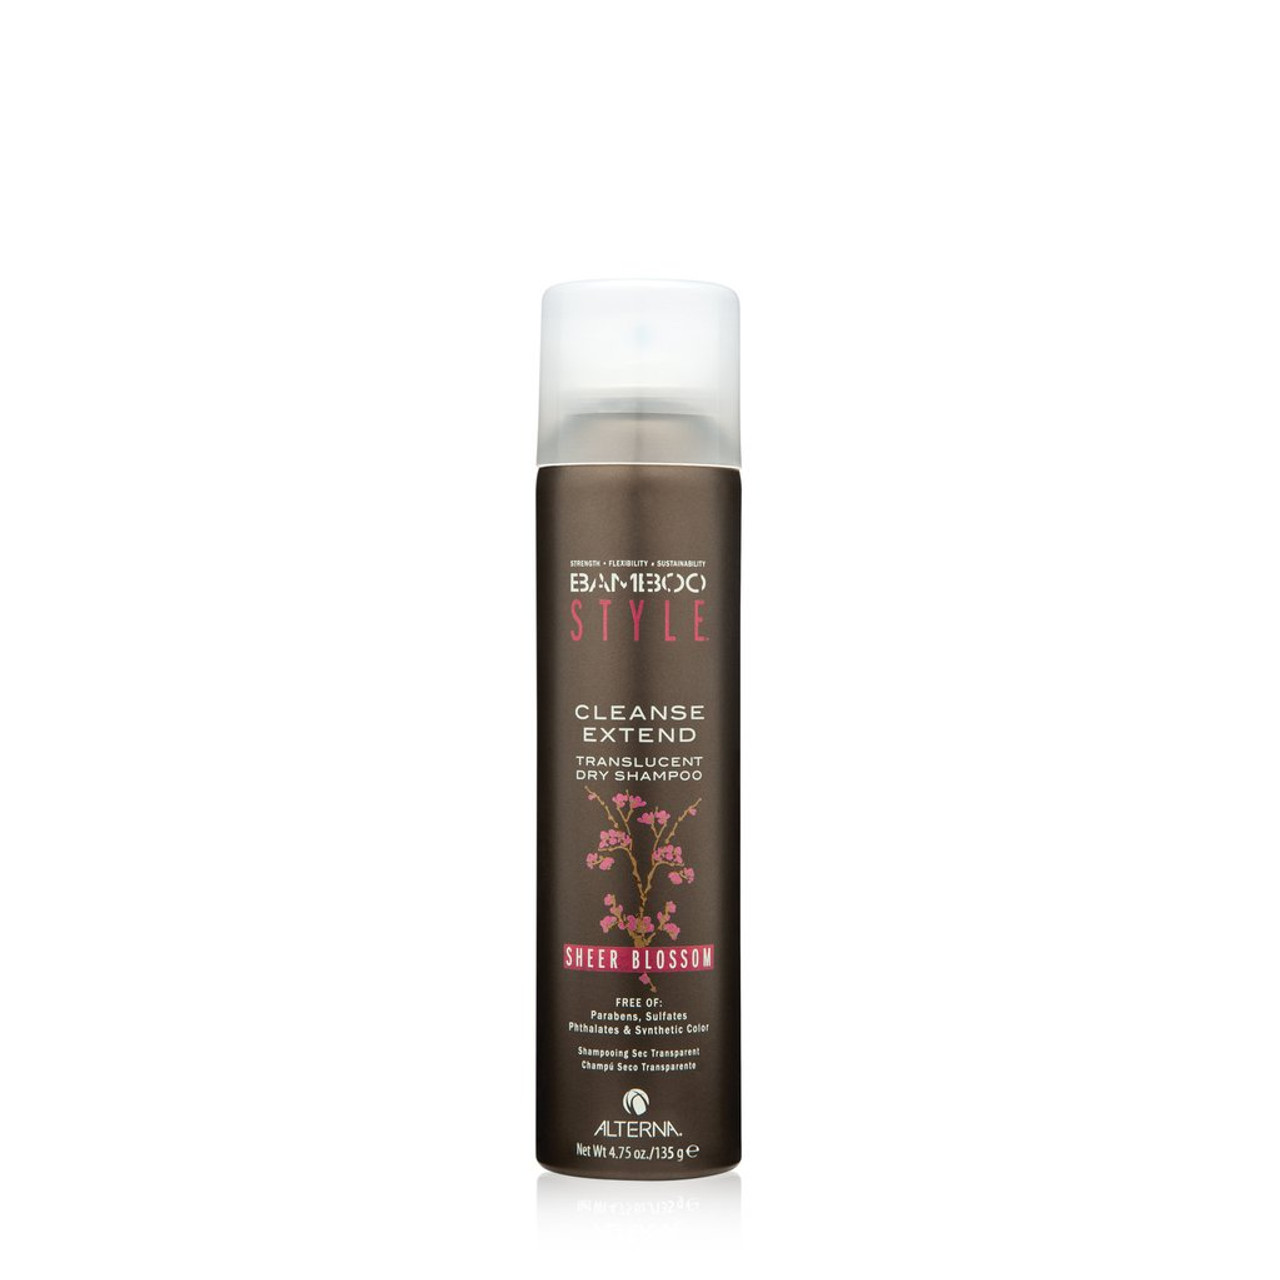 Alterna Bamboo Style Cleanse Extend Dry Shampoo - Sheer Blossom